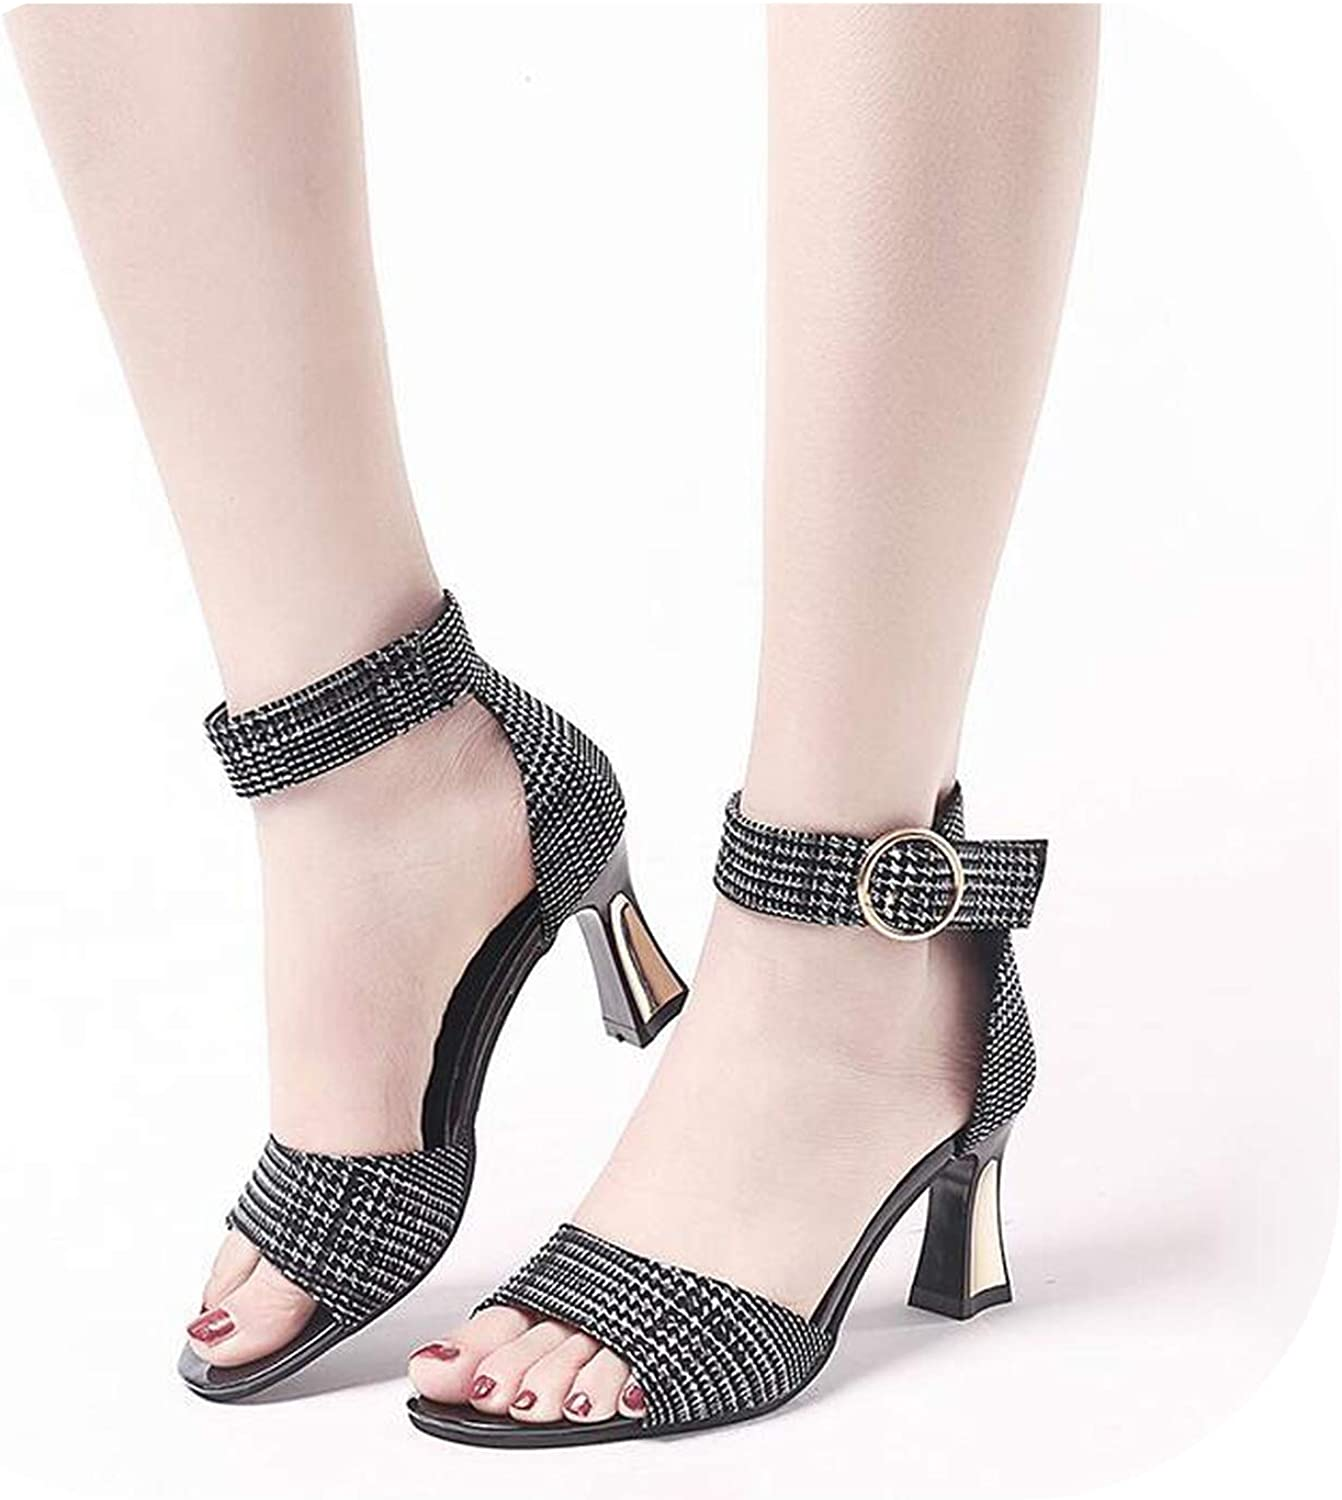 Gooding Day 2019 Summer Women PU Leather Sandals High Heels Buckle Strap Female Fashion Dress Woman Sandal shoes